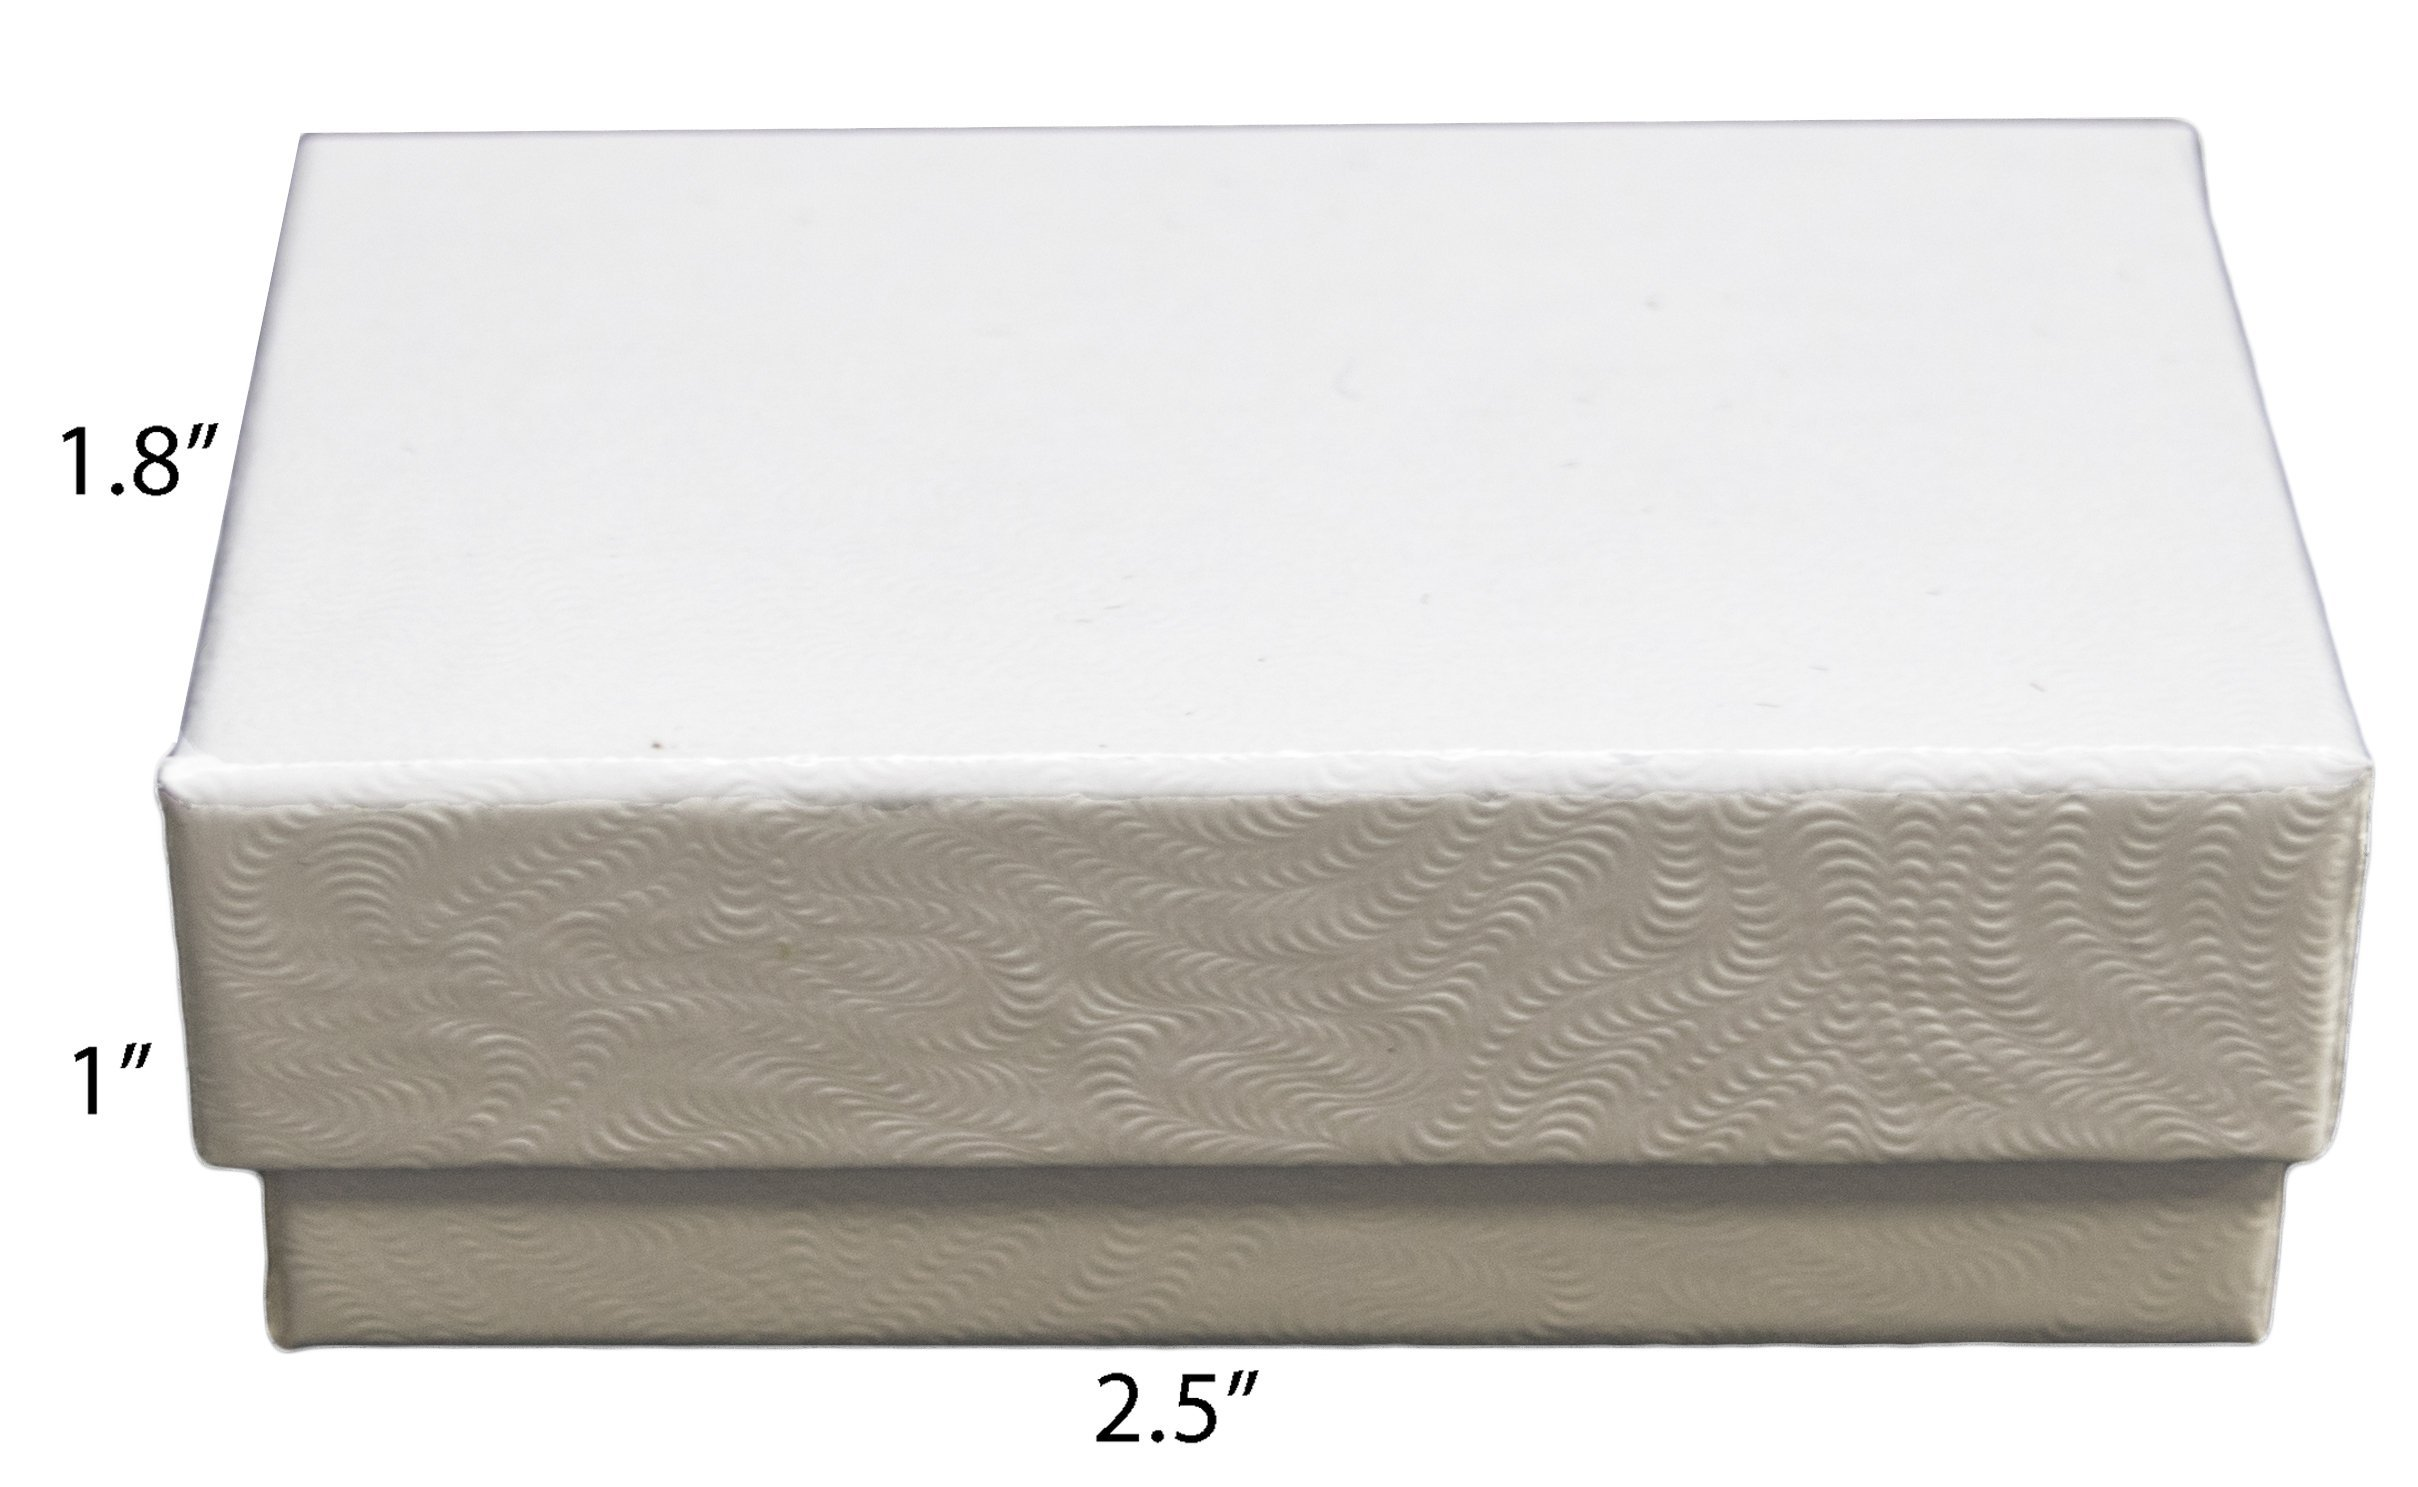 Novel Box MADE IN USA Jewelry Gift Box in White Swirl With Removable Cotton Pad 2.5X1.8X1'' (Pack of 25) + NB Cleaning Cloth by Novel Box (Image #3)